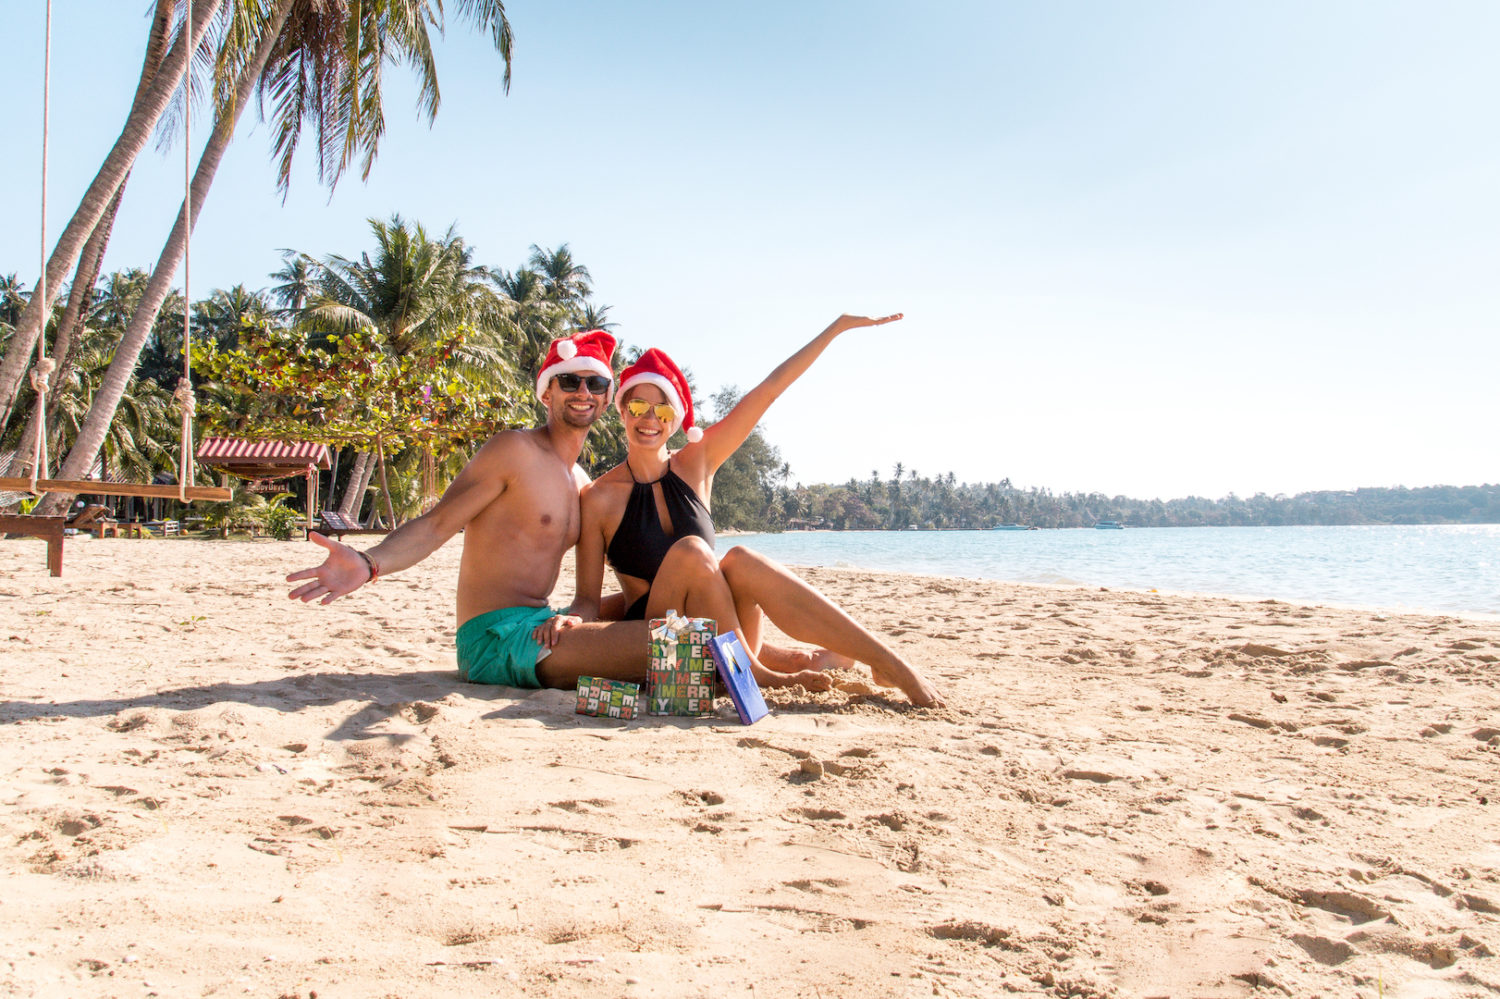 20 Best Christmas Getaway Destinations In Asia: Plan An Epic Christmas  Vacation in Asia Your Family Won't Forget | Crawford Creations